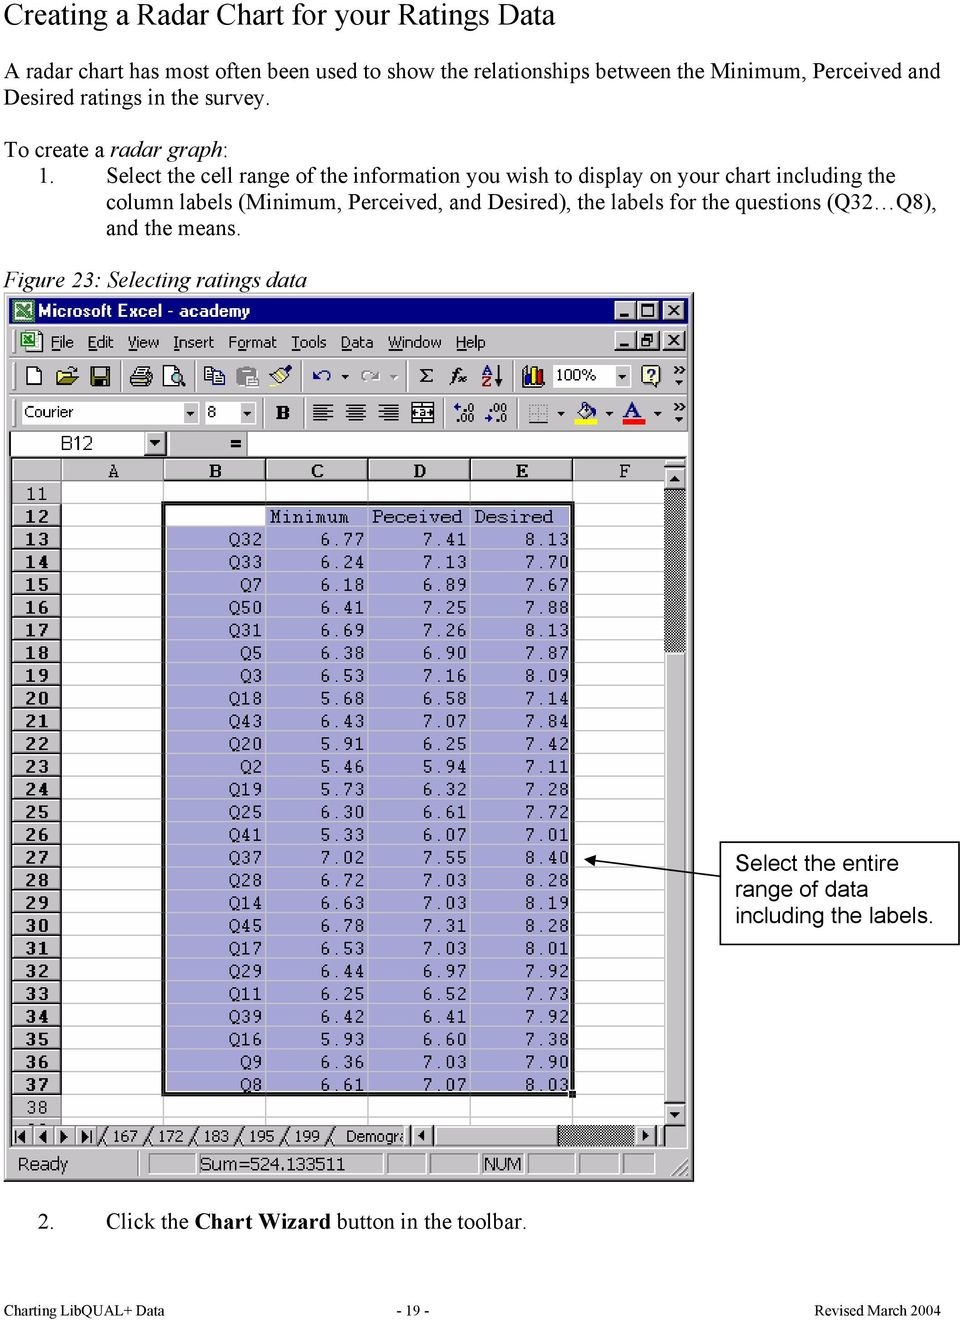 Select the cell range of the information you wish to display on your chart including the column labels (Minimum, Perceived, and Desired), the